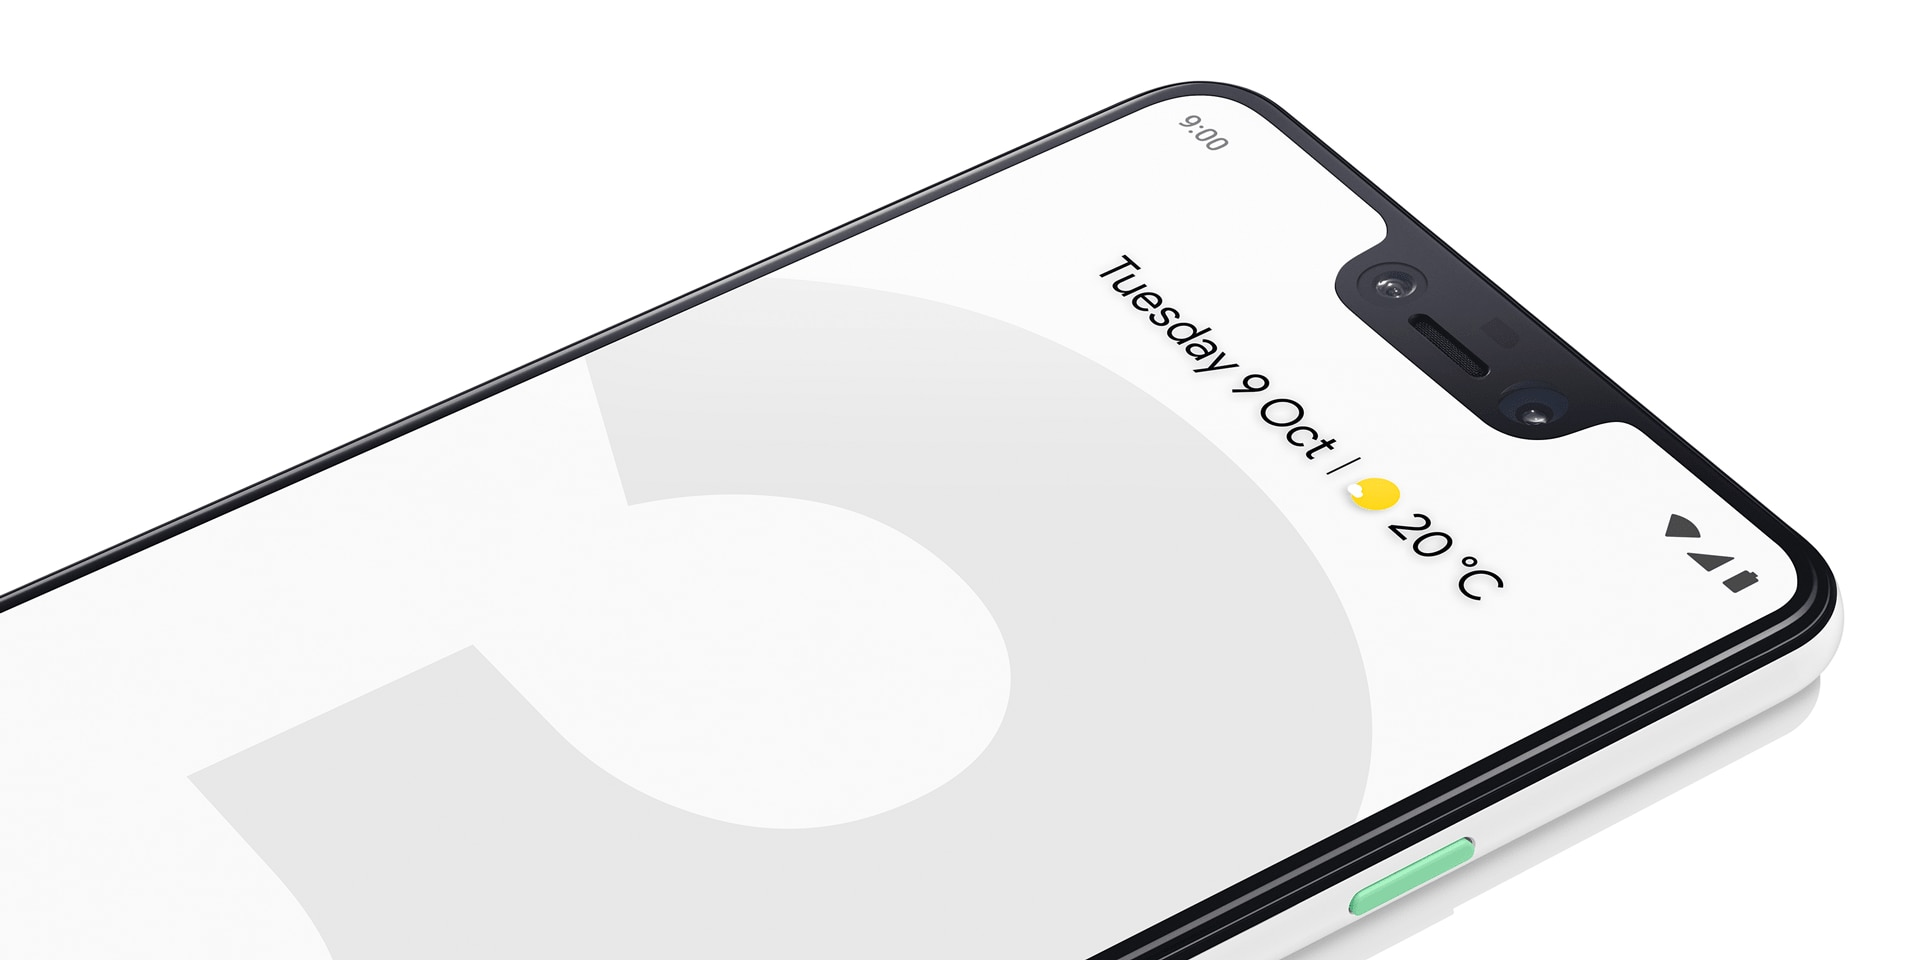 Order your Google Pixel 3 today.